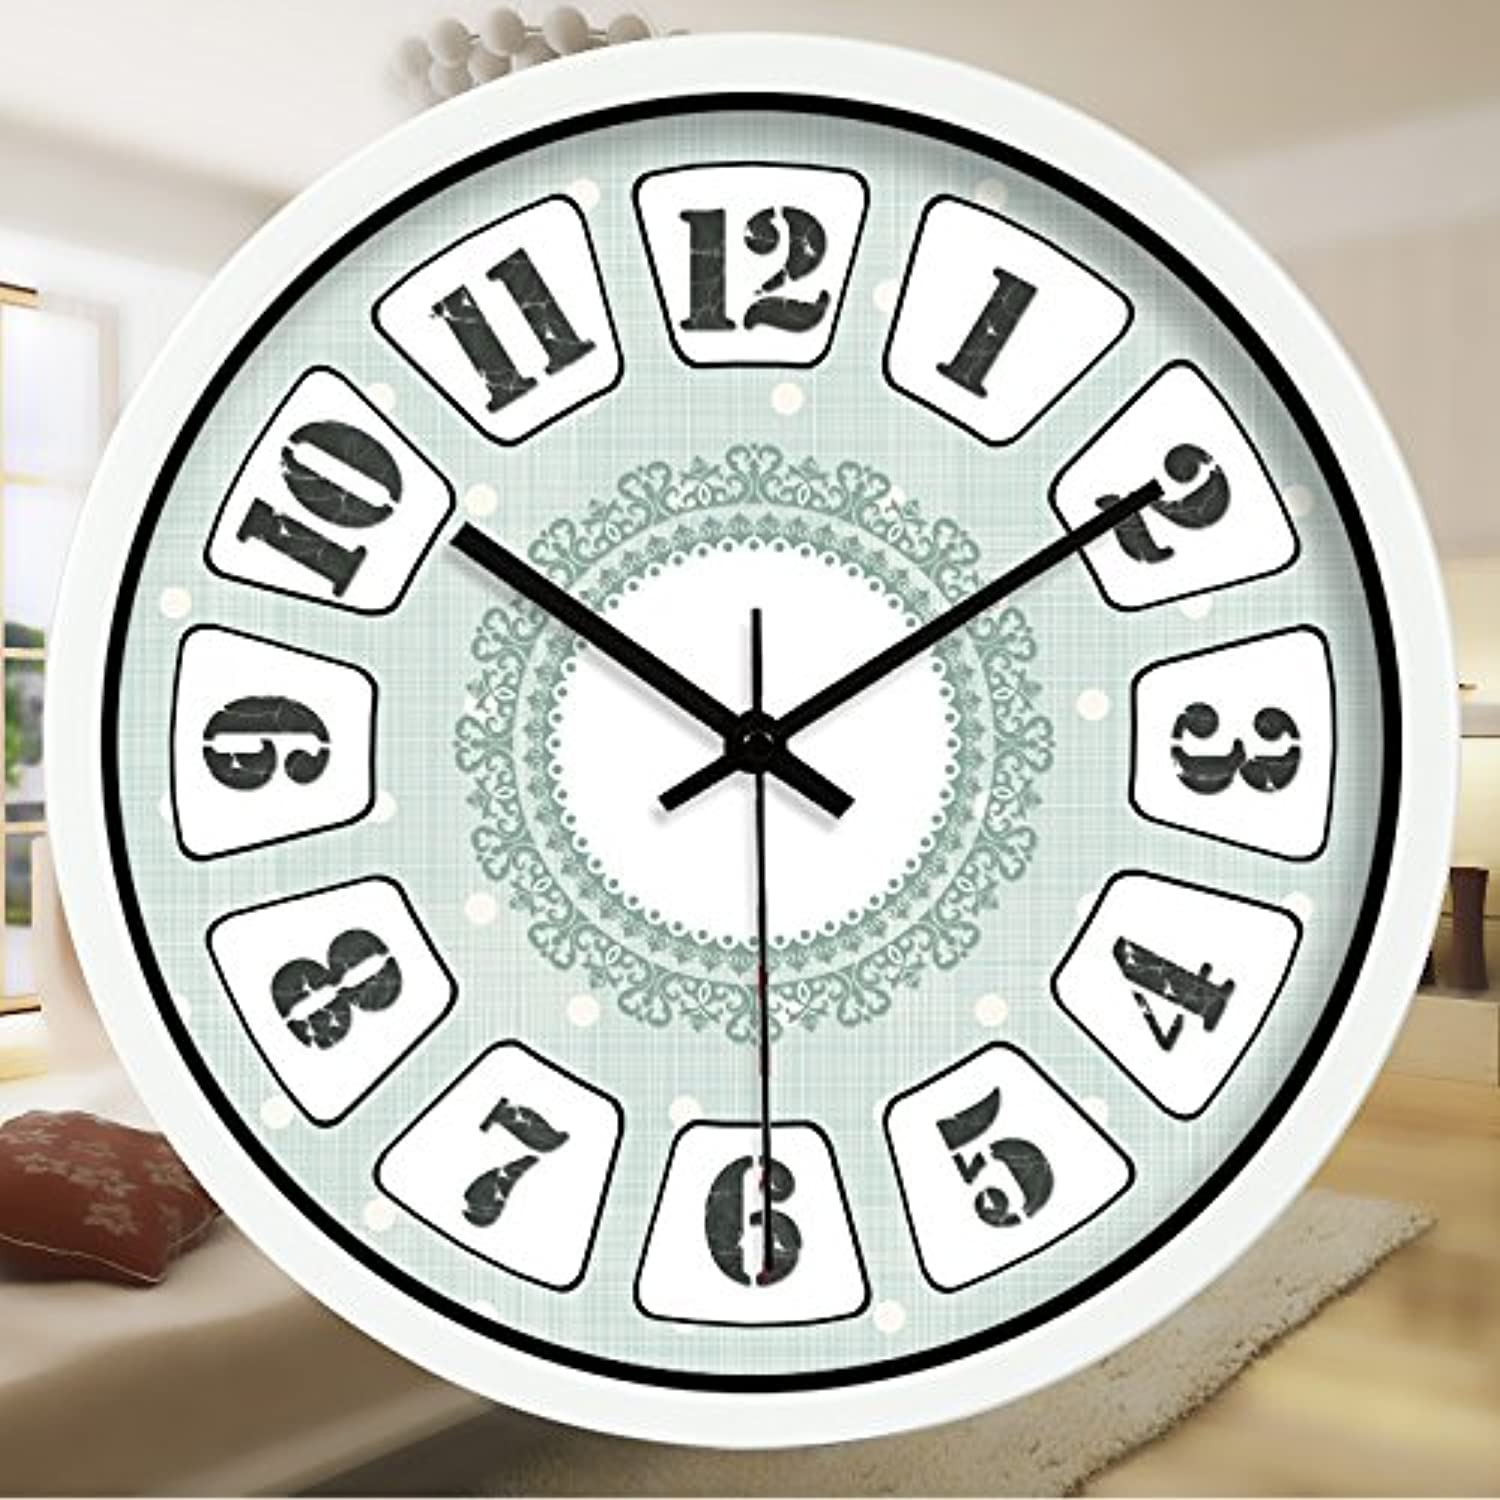 Znzbzt Simple Creative Mute Wall Clock The American Floral Wall Clock Continental Antique Living Room Restaurant is The hotel's Decor Clocks Clock Mute 214,8 , The White